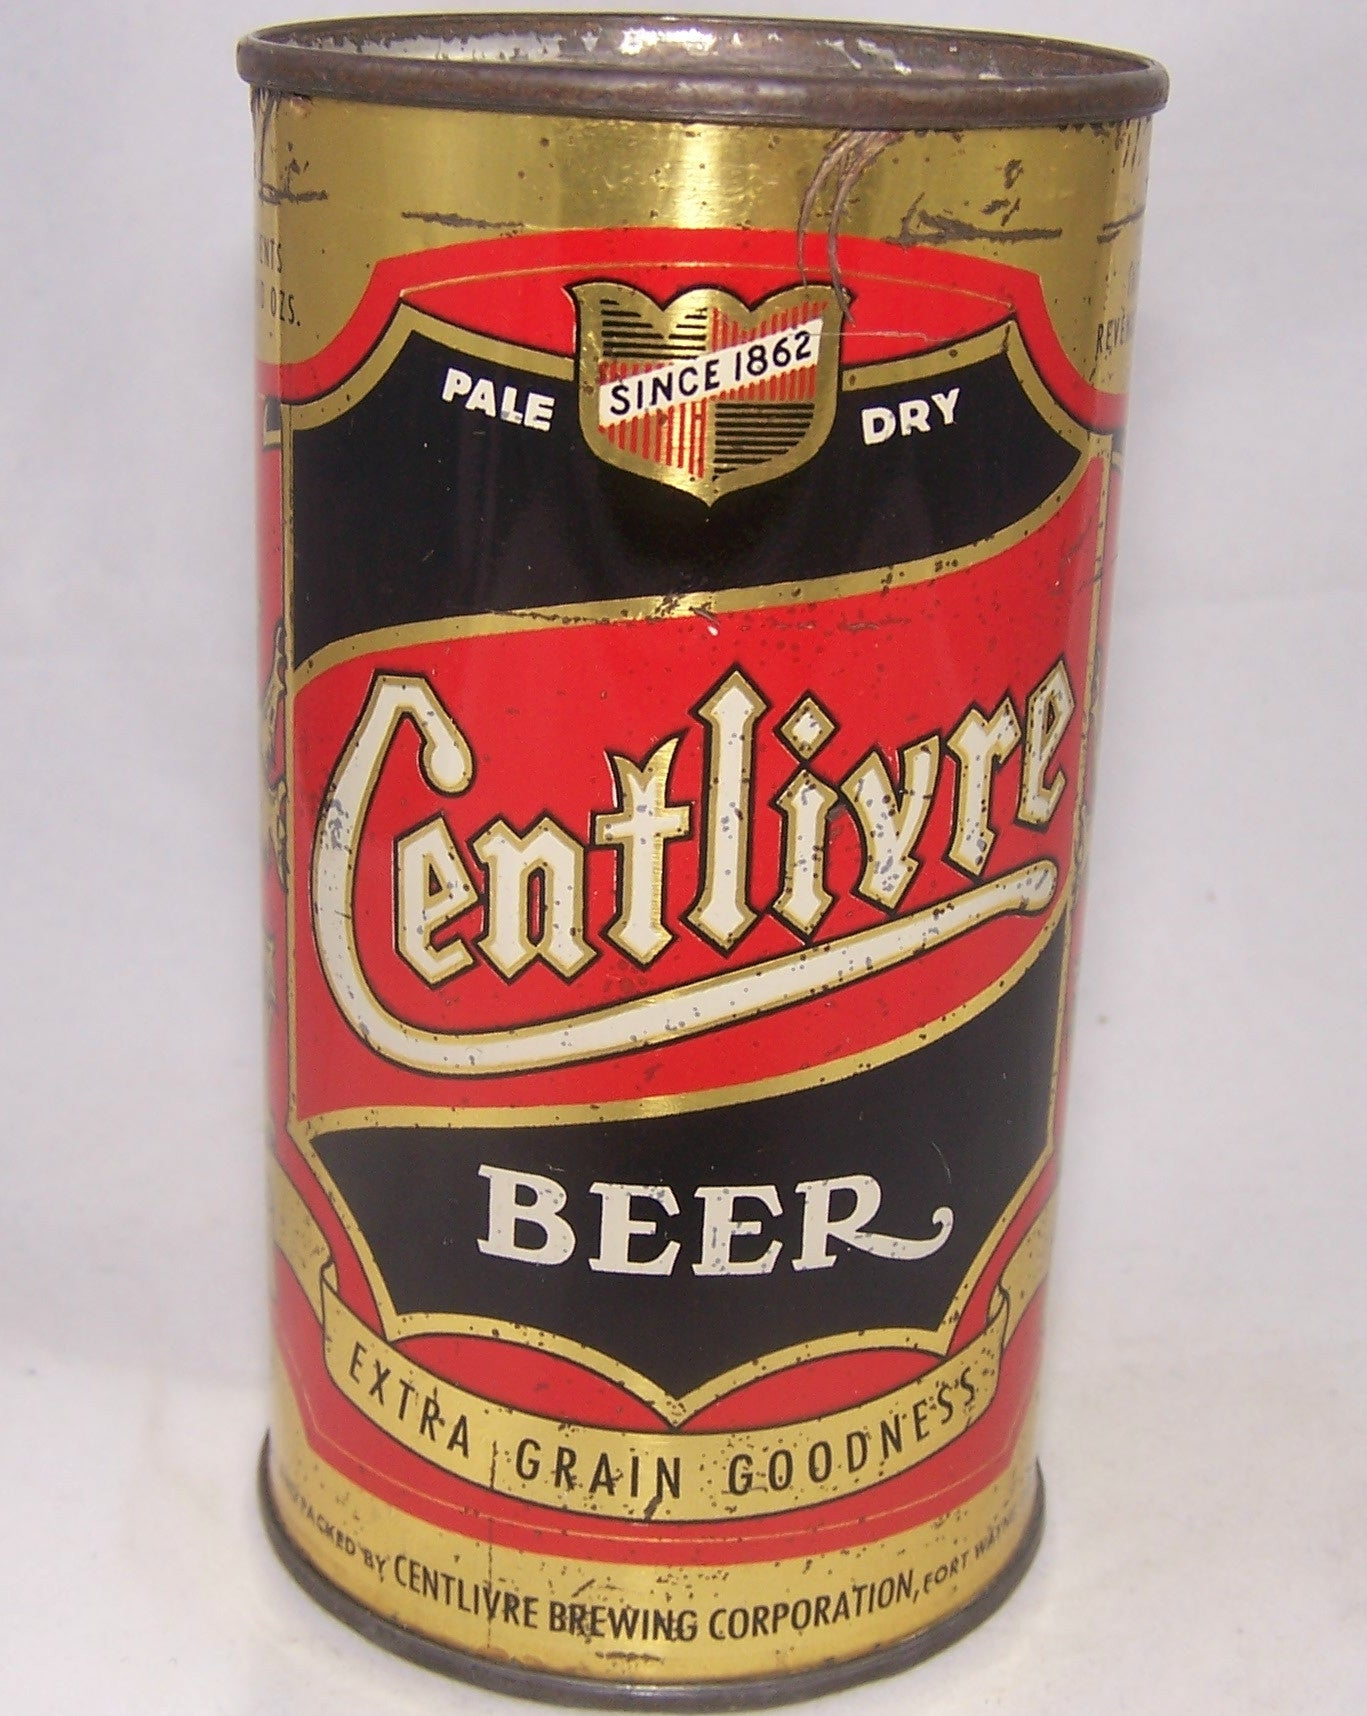 Centlivre Beer, Lilek #182, Grade 1- Sold on 01/18/17